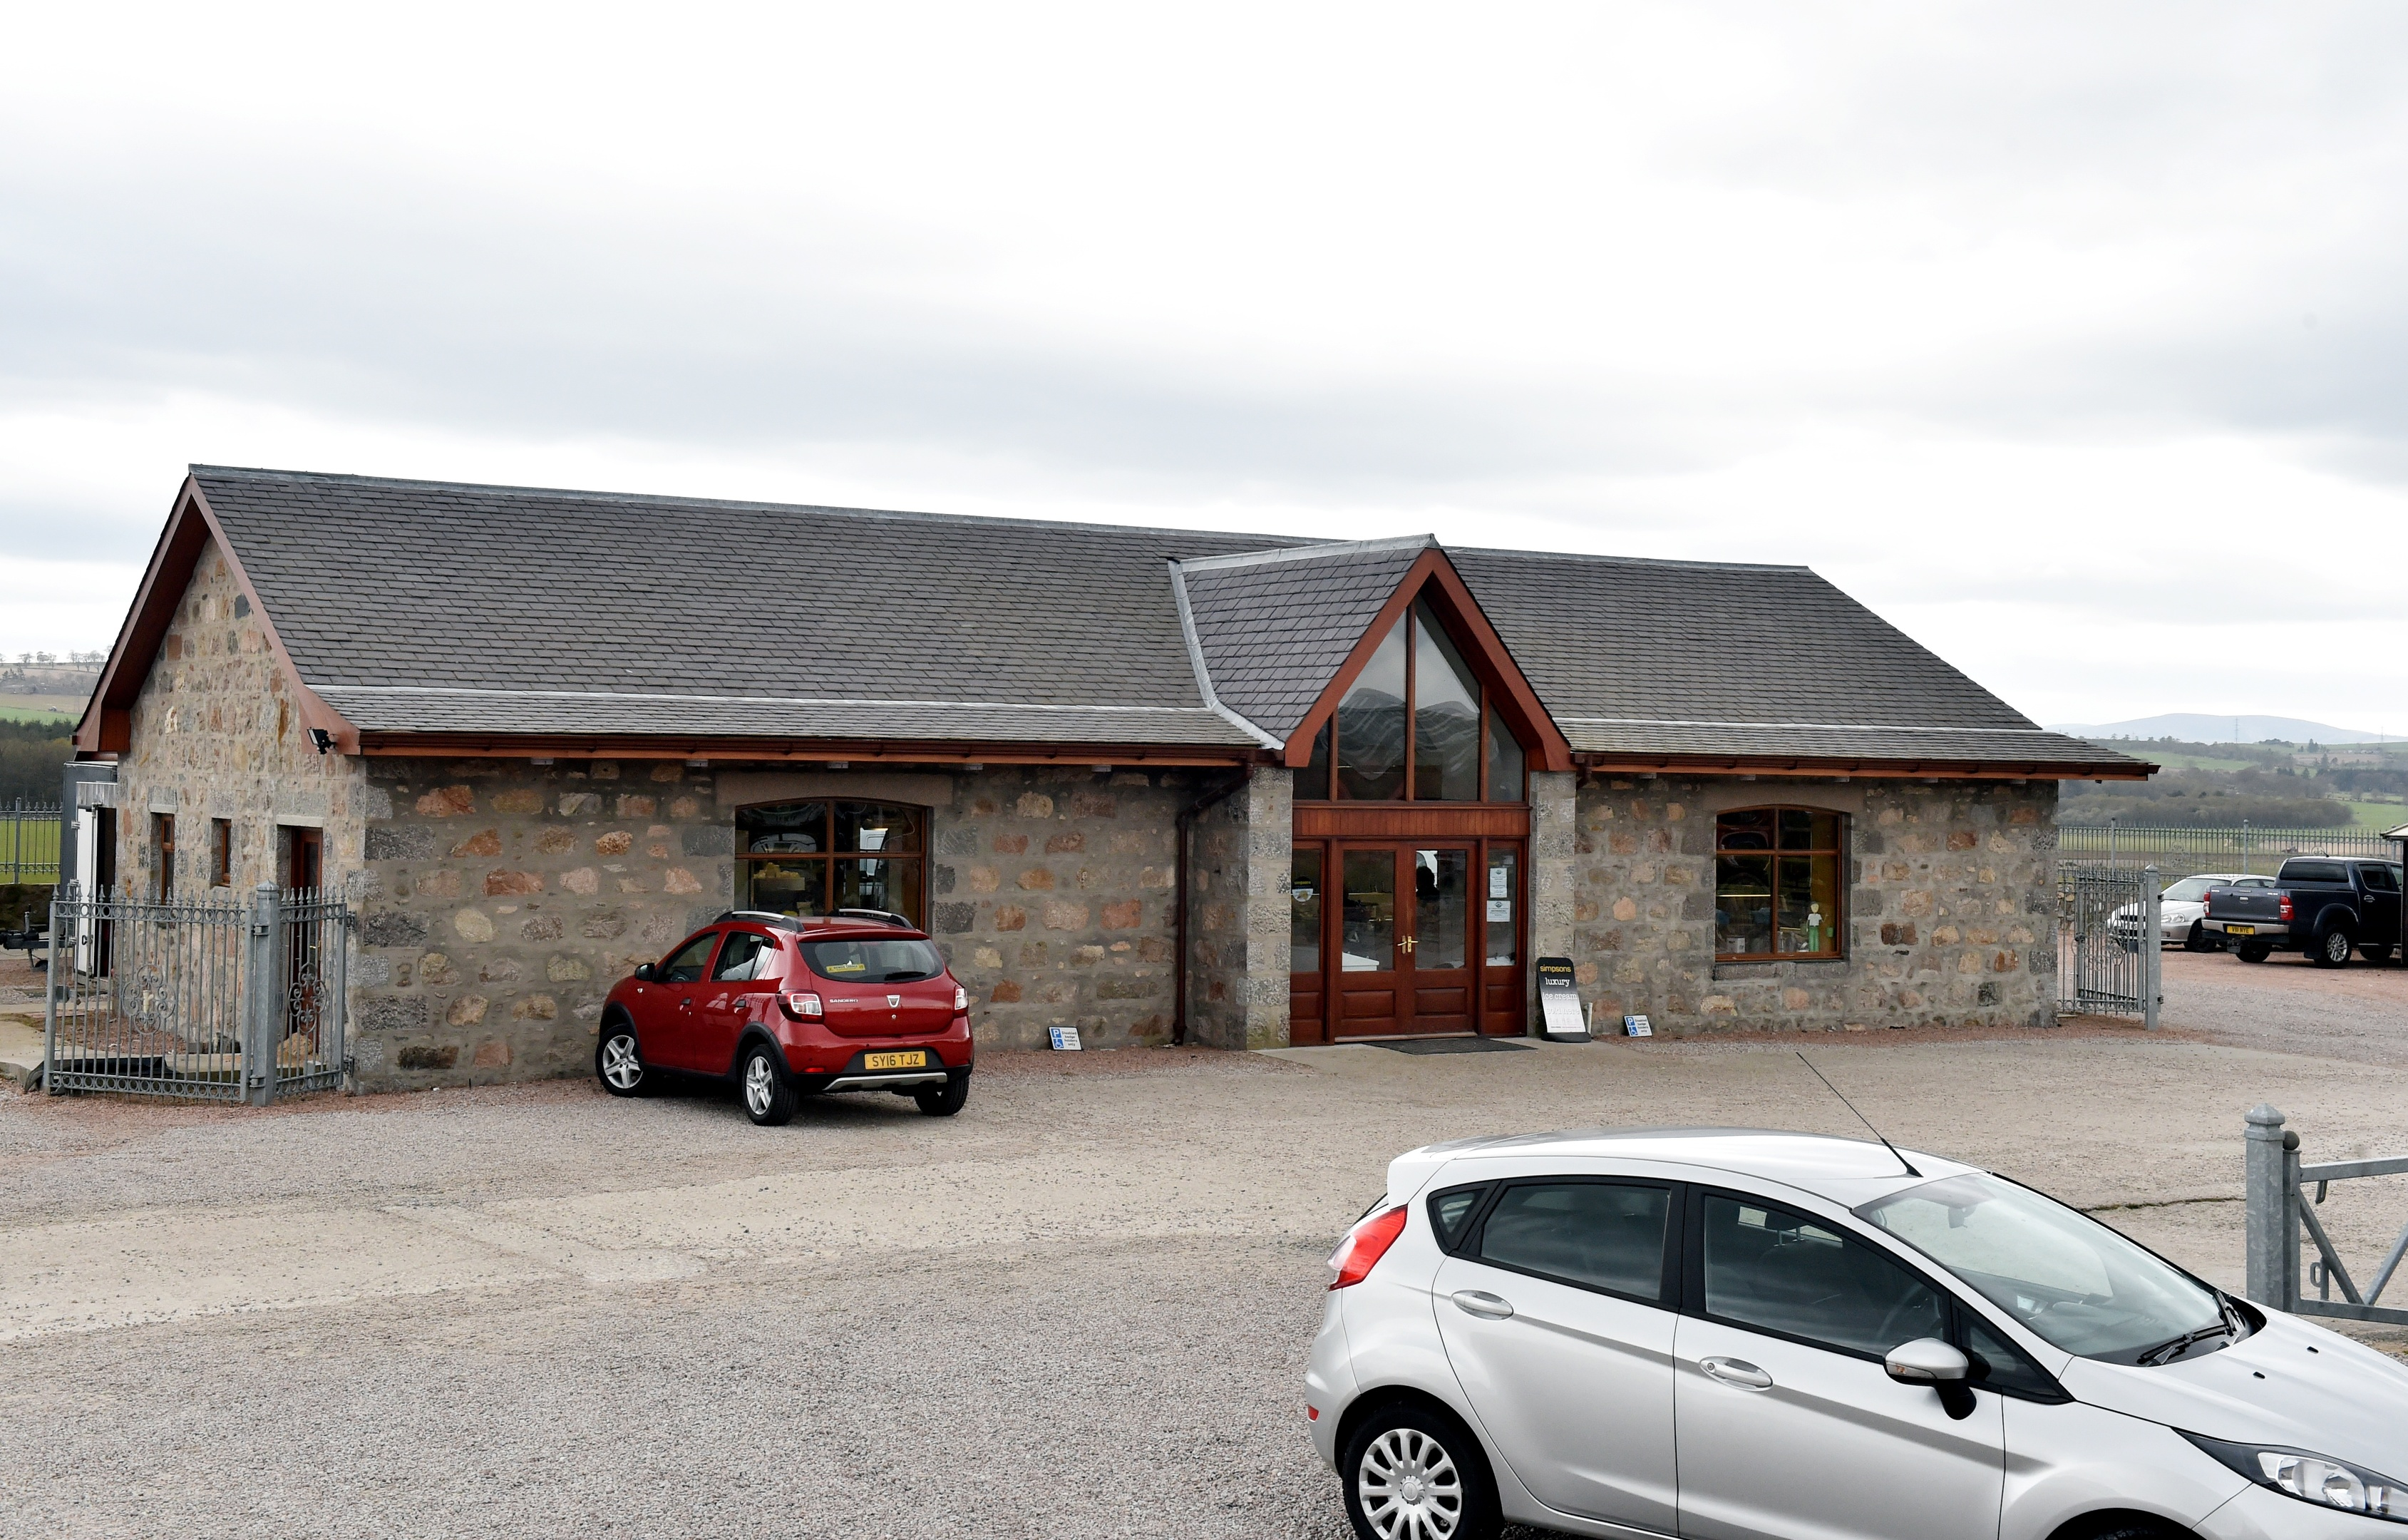 Marshall's Farm Shop near Kintore is to be extended with a bigger cafe included in plans.